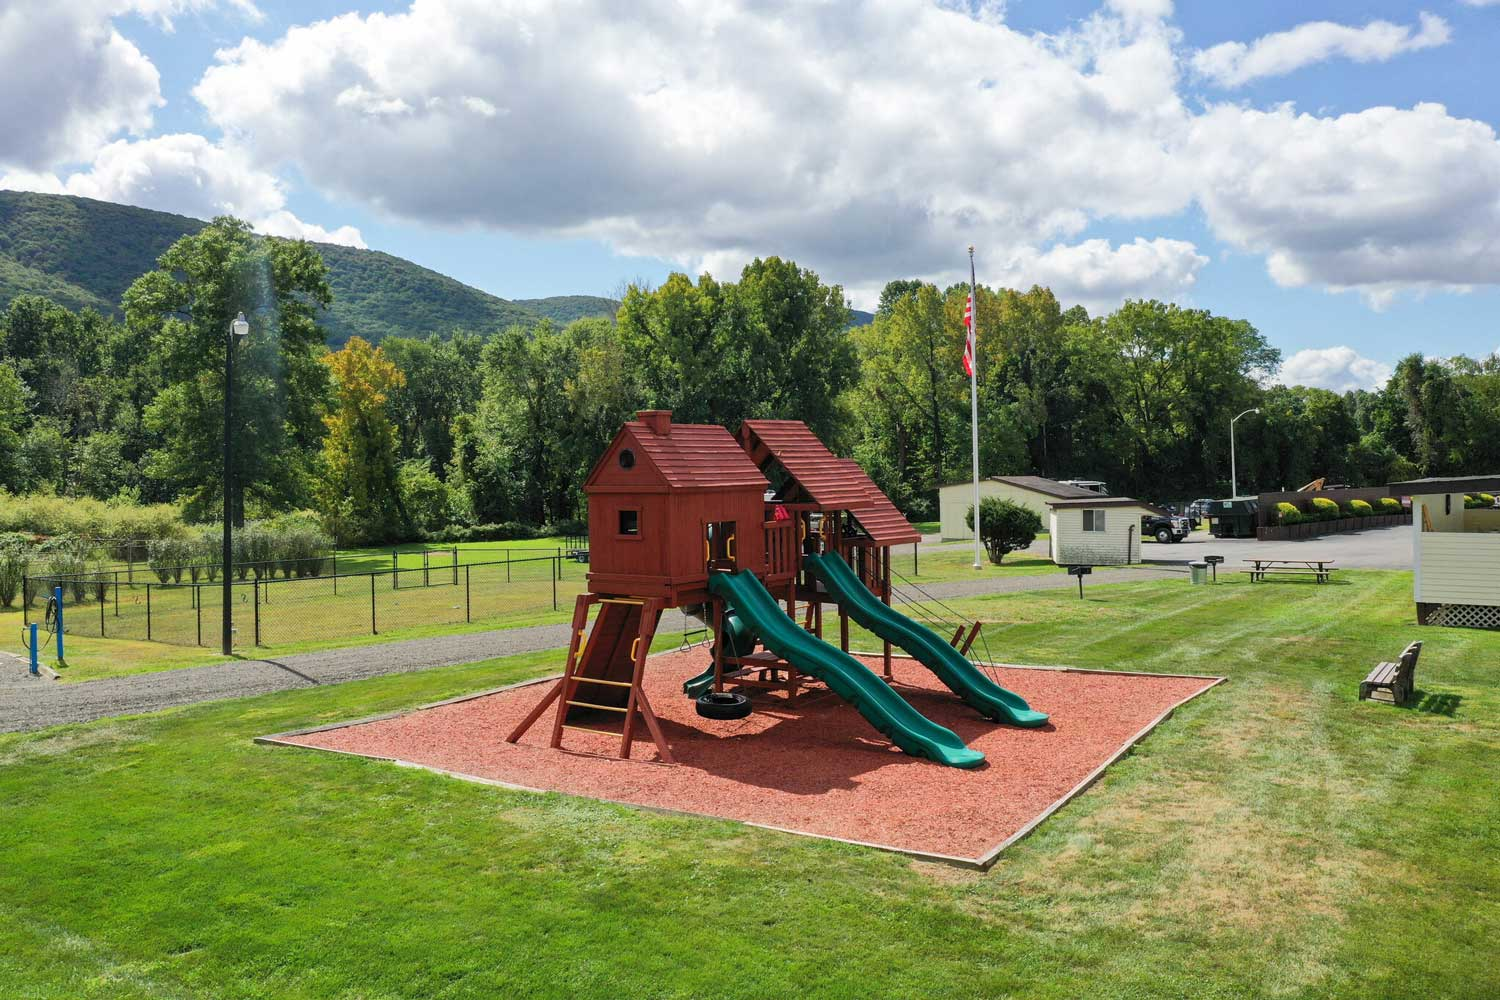 Playground at Mountainview Gardens Apartments in Fishkill, NY